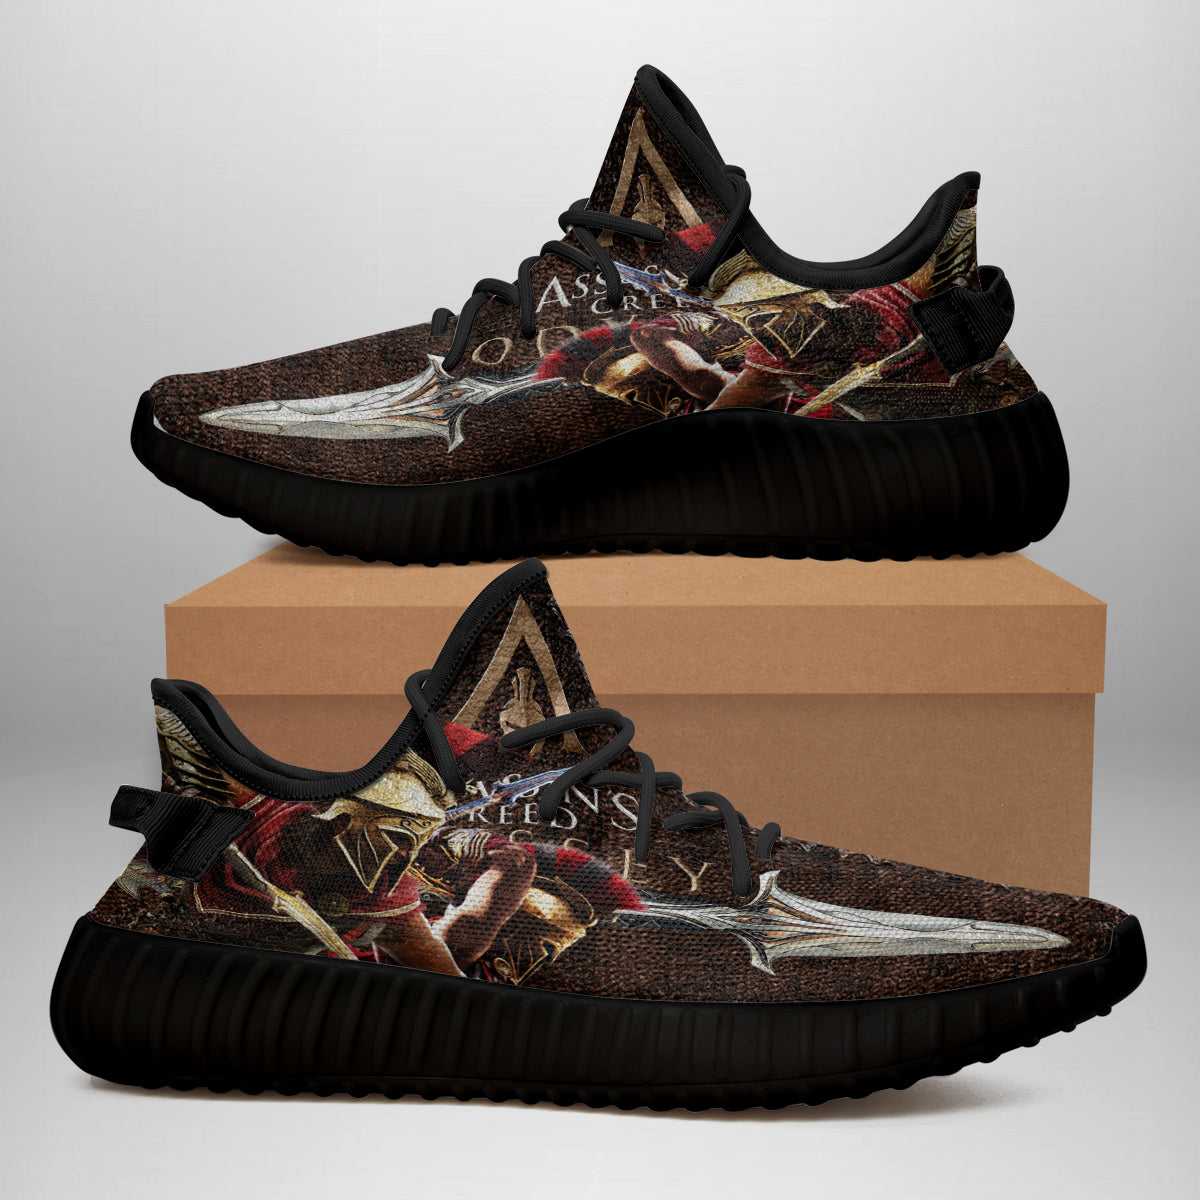 Assassin S Creed Shoe Men S And Women S Yeezy 3d Gift For Fan 15